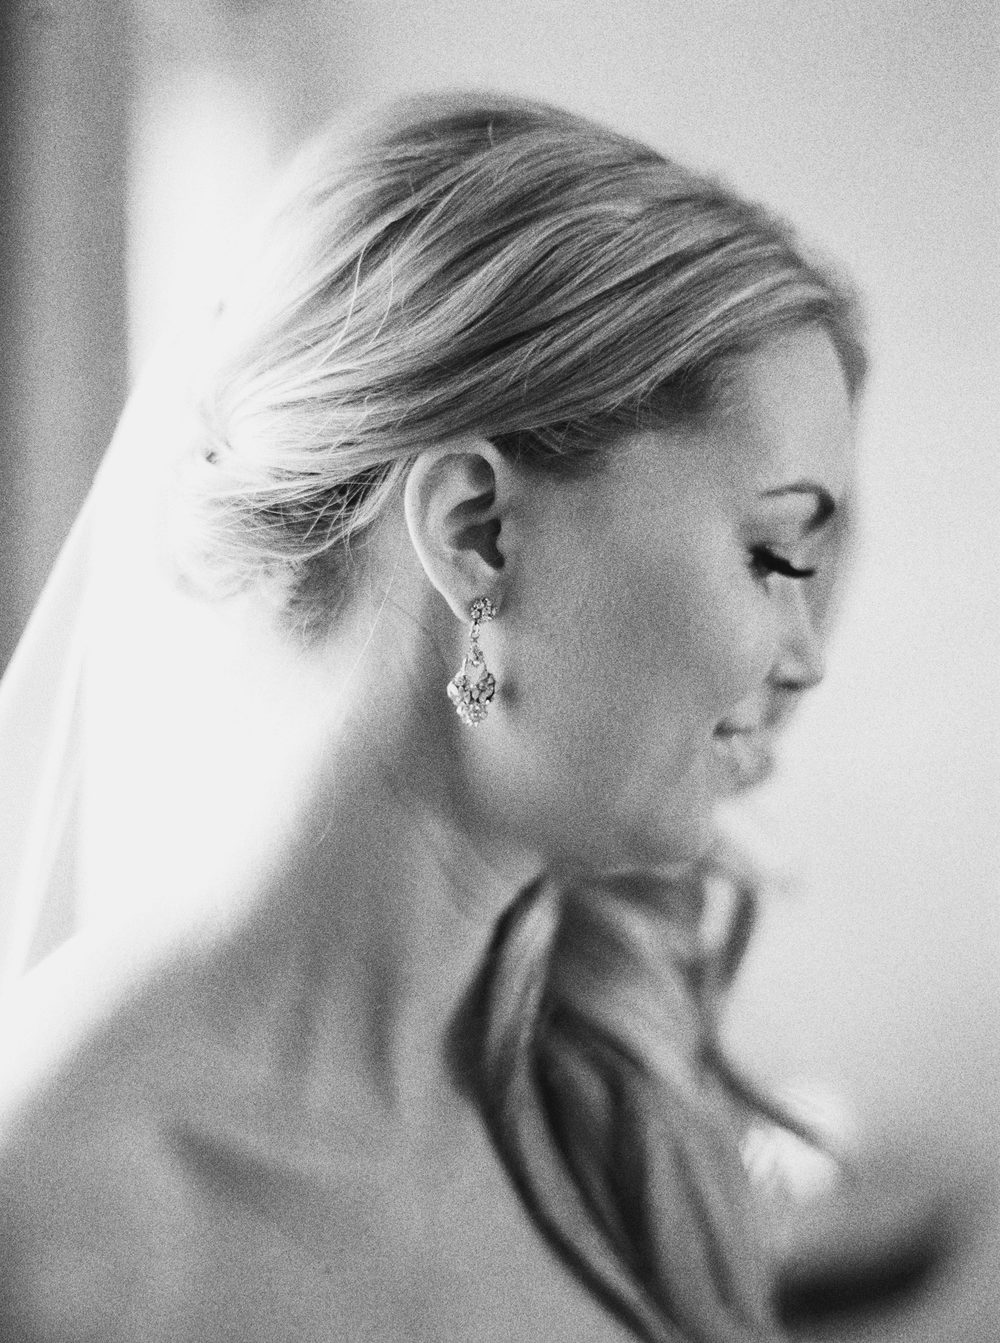 Kurtz-Orchards-Niagara-on-the-Lake-Wedding-photography-by-When-He-Found-Her-025.JPG